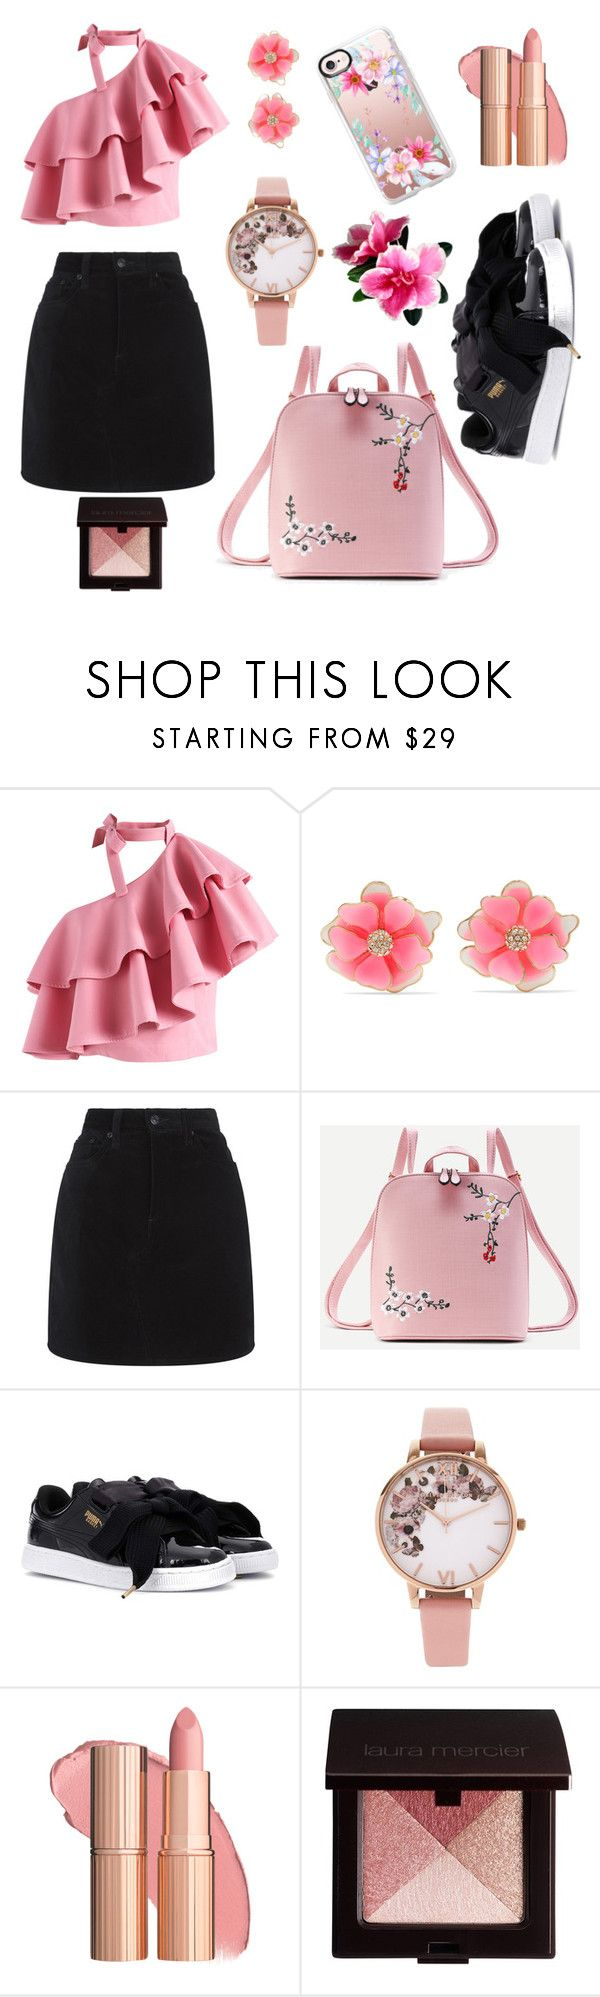 """Untitled #333"" by inesgenebra on Polyvore featuring Chicwish, Kenneth Jay Lane, rag & bone, WithChic, Puma, Olivia Burton, Laura Mercier and Casetify"